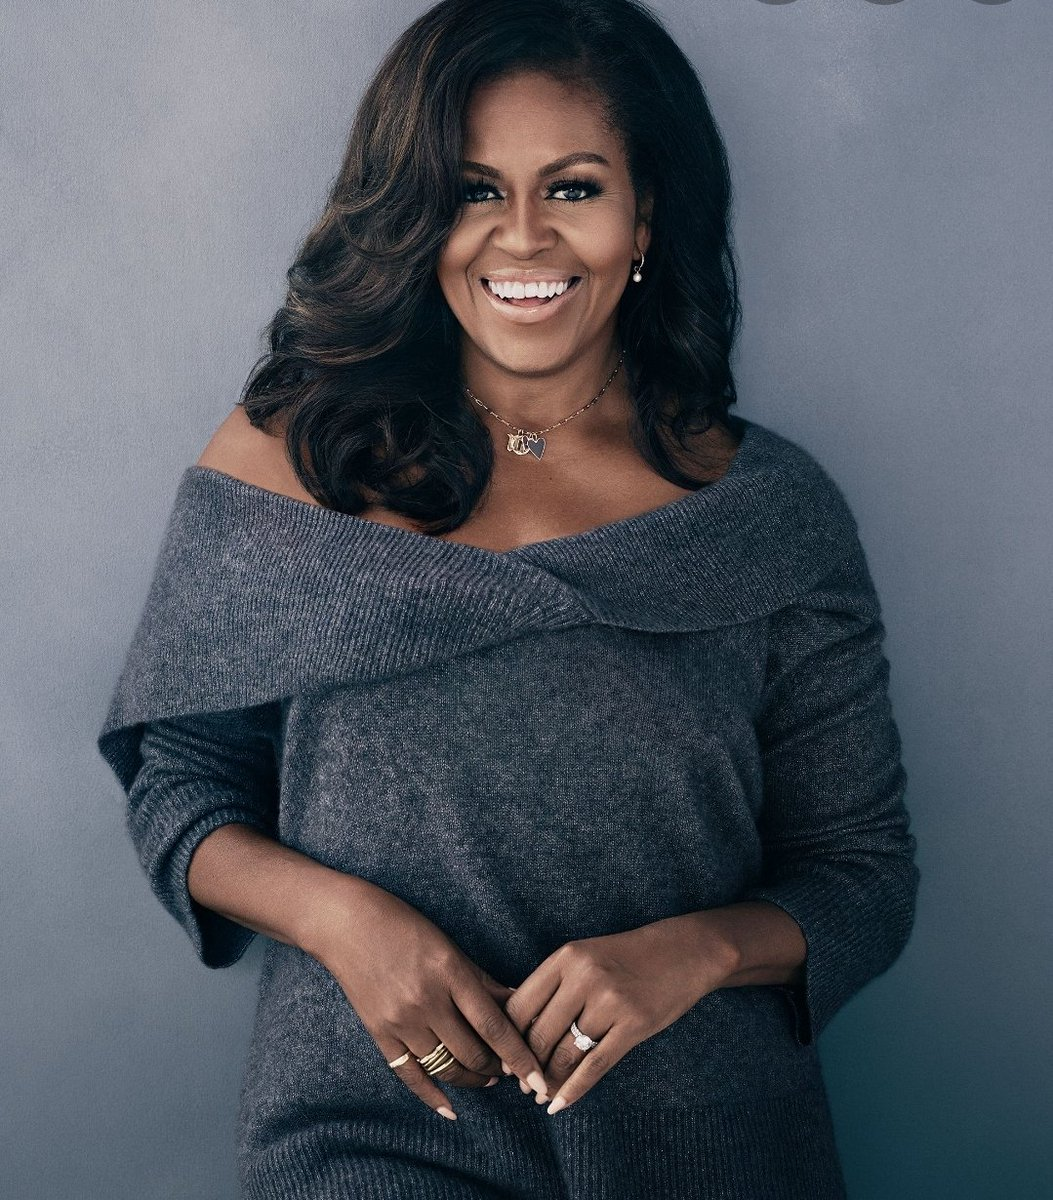 """""""Don't ever make decisions based on fear. Make decisions based on hope and possibility. Make decisions based on what should happen, not what shouldn't"""" -Michelle Obama Happy Worthday @MichelleObama   Today is the date a giant was born. January 17th #DayofGiants"""